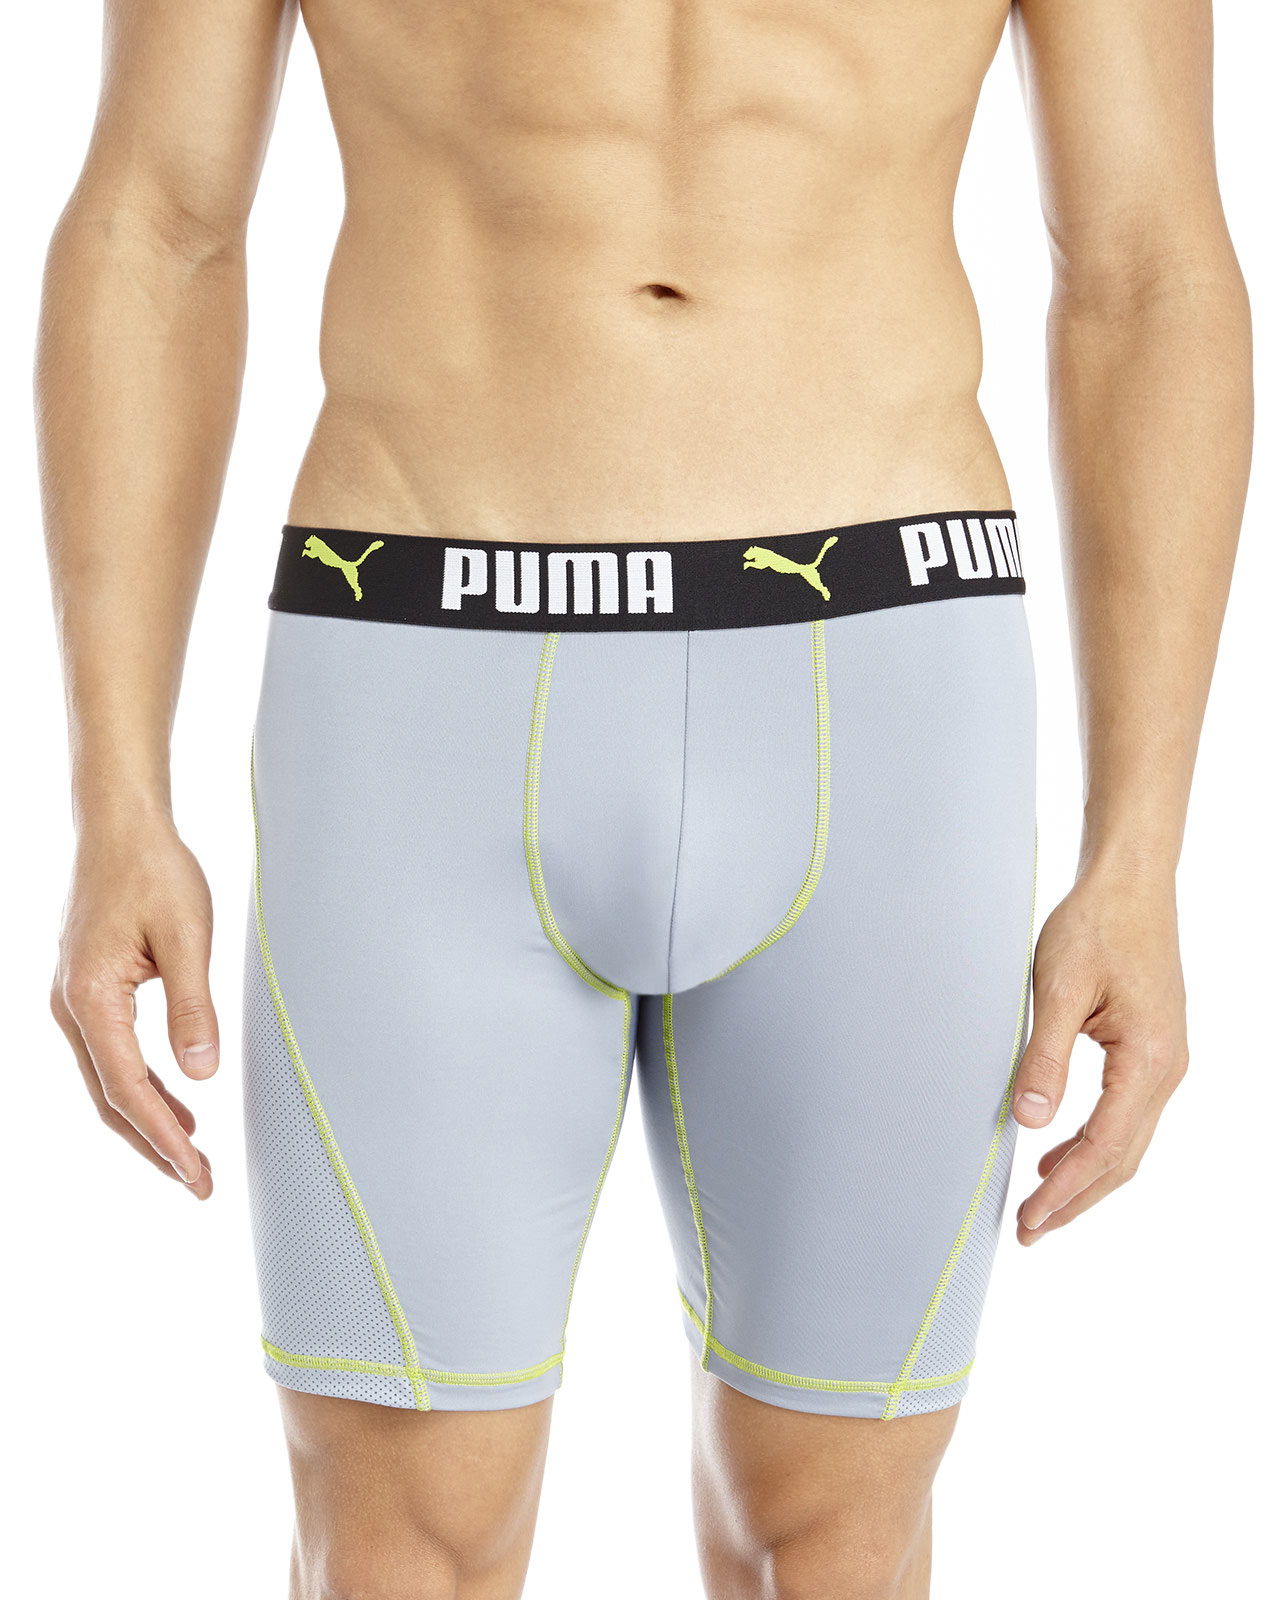 Puma Perforated Boxer Briefs in Gray for Men